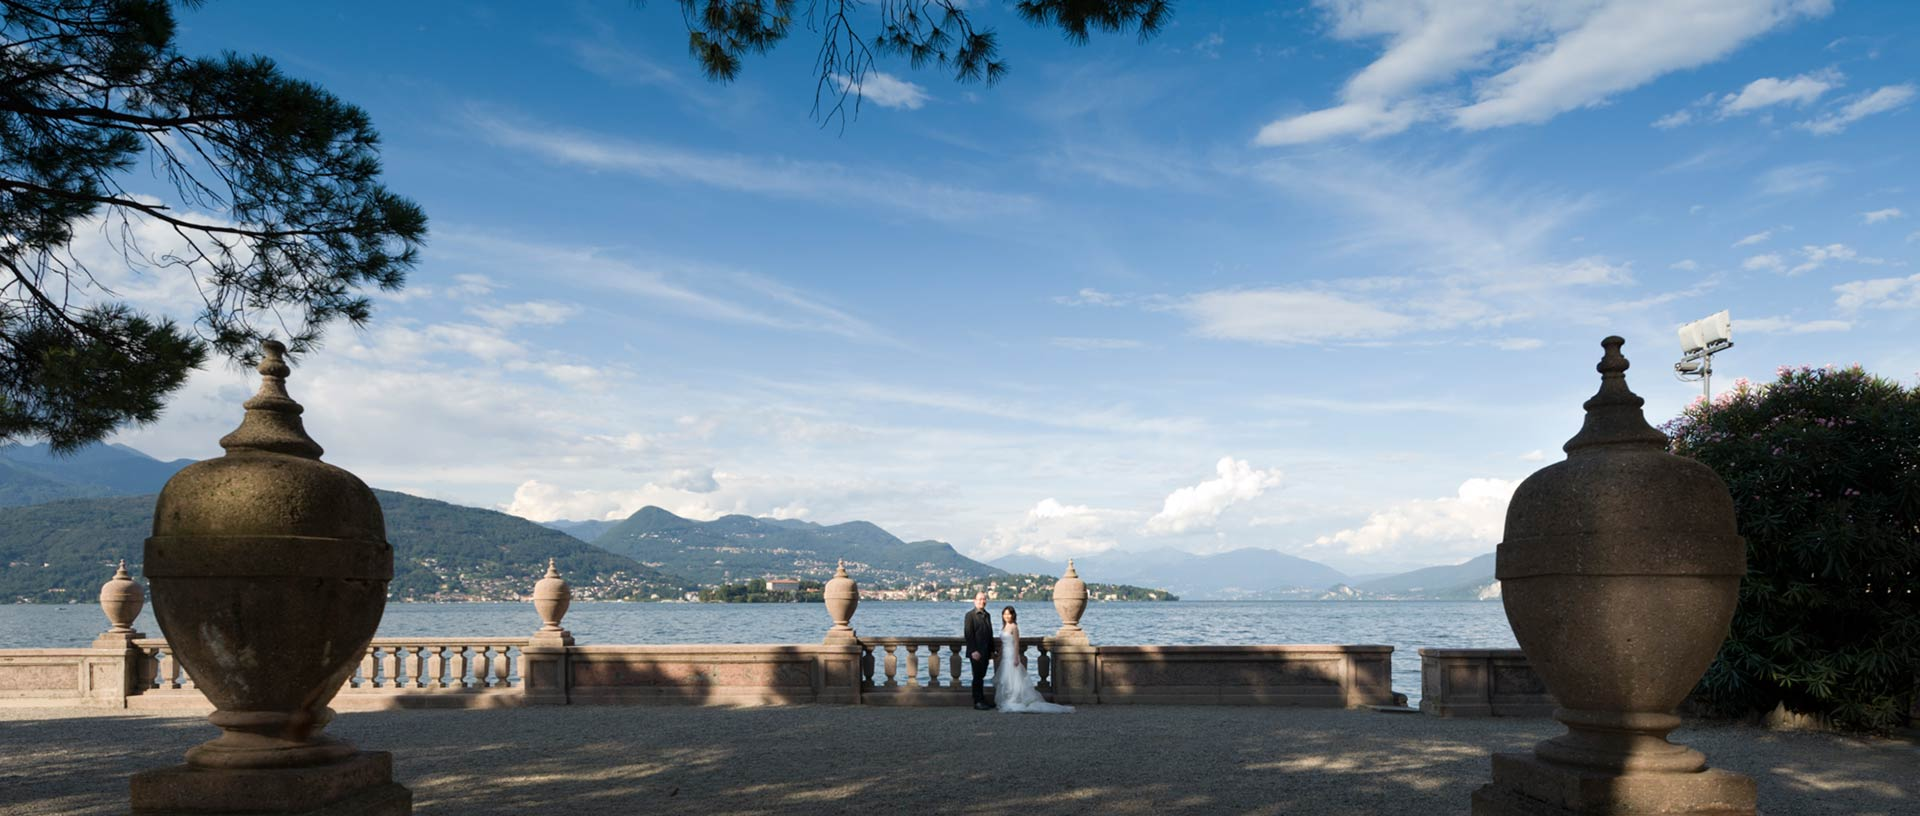 Elope on Lake Maggiore